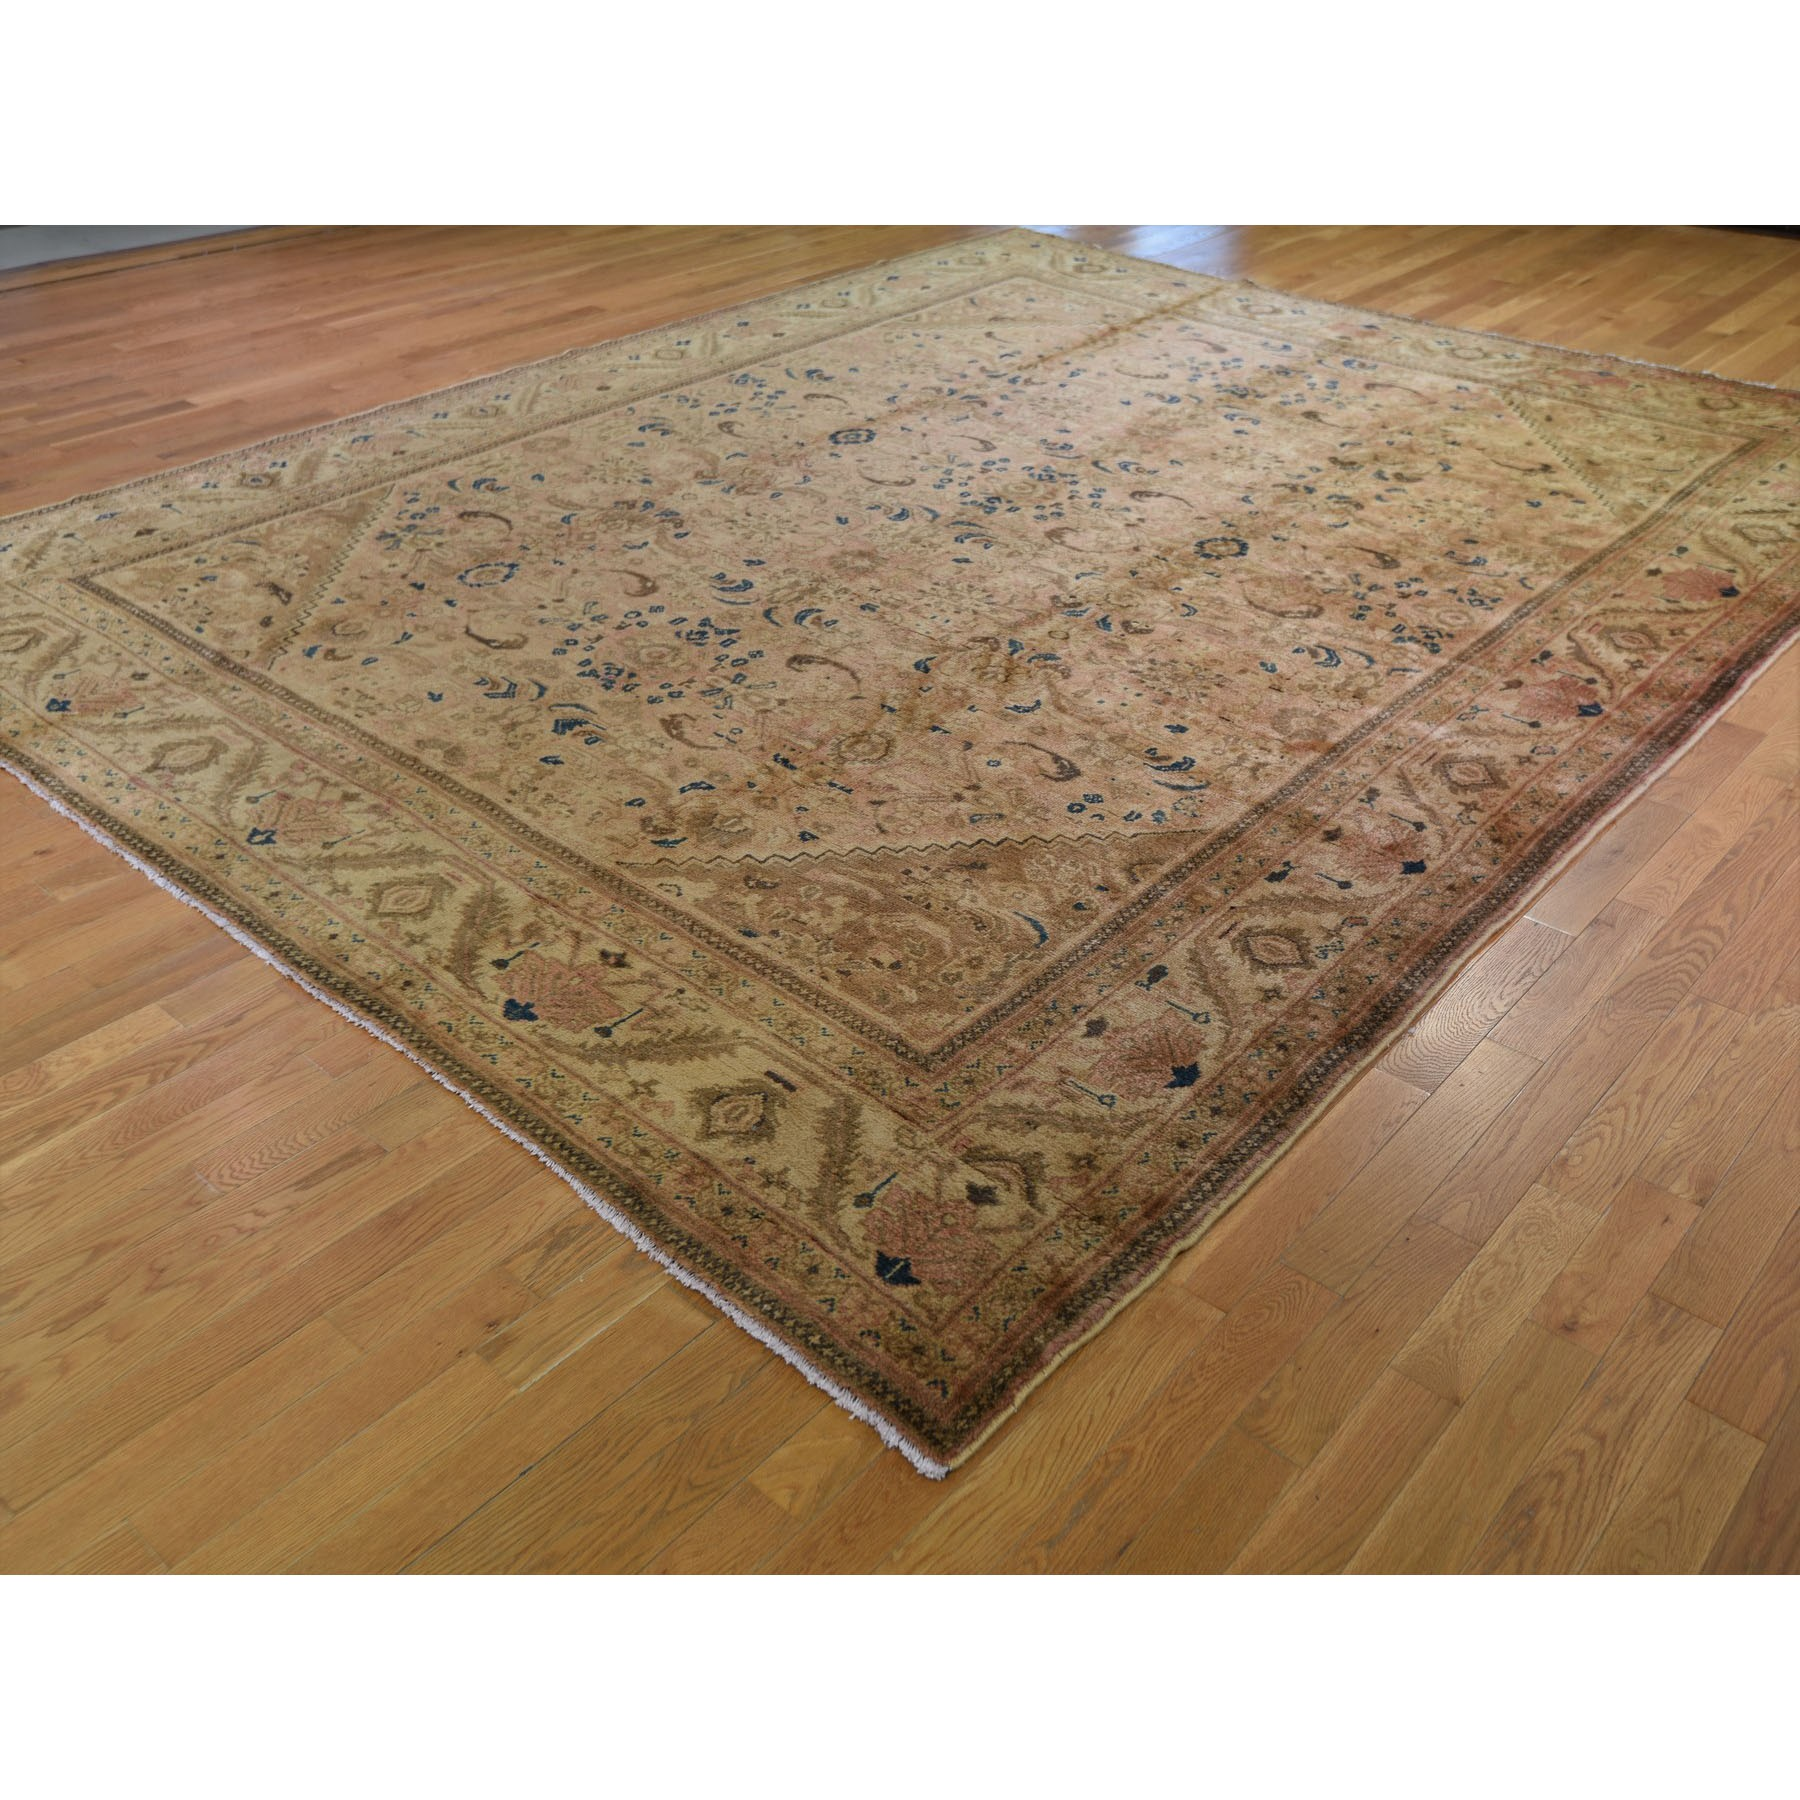 "10'8""x13'6"" Vintage Persian Mahal With Apricot Wash Full Pile Pure Wool Hand Woven Oriental Rug"